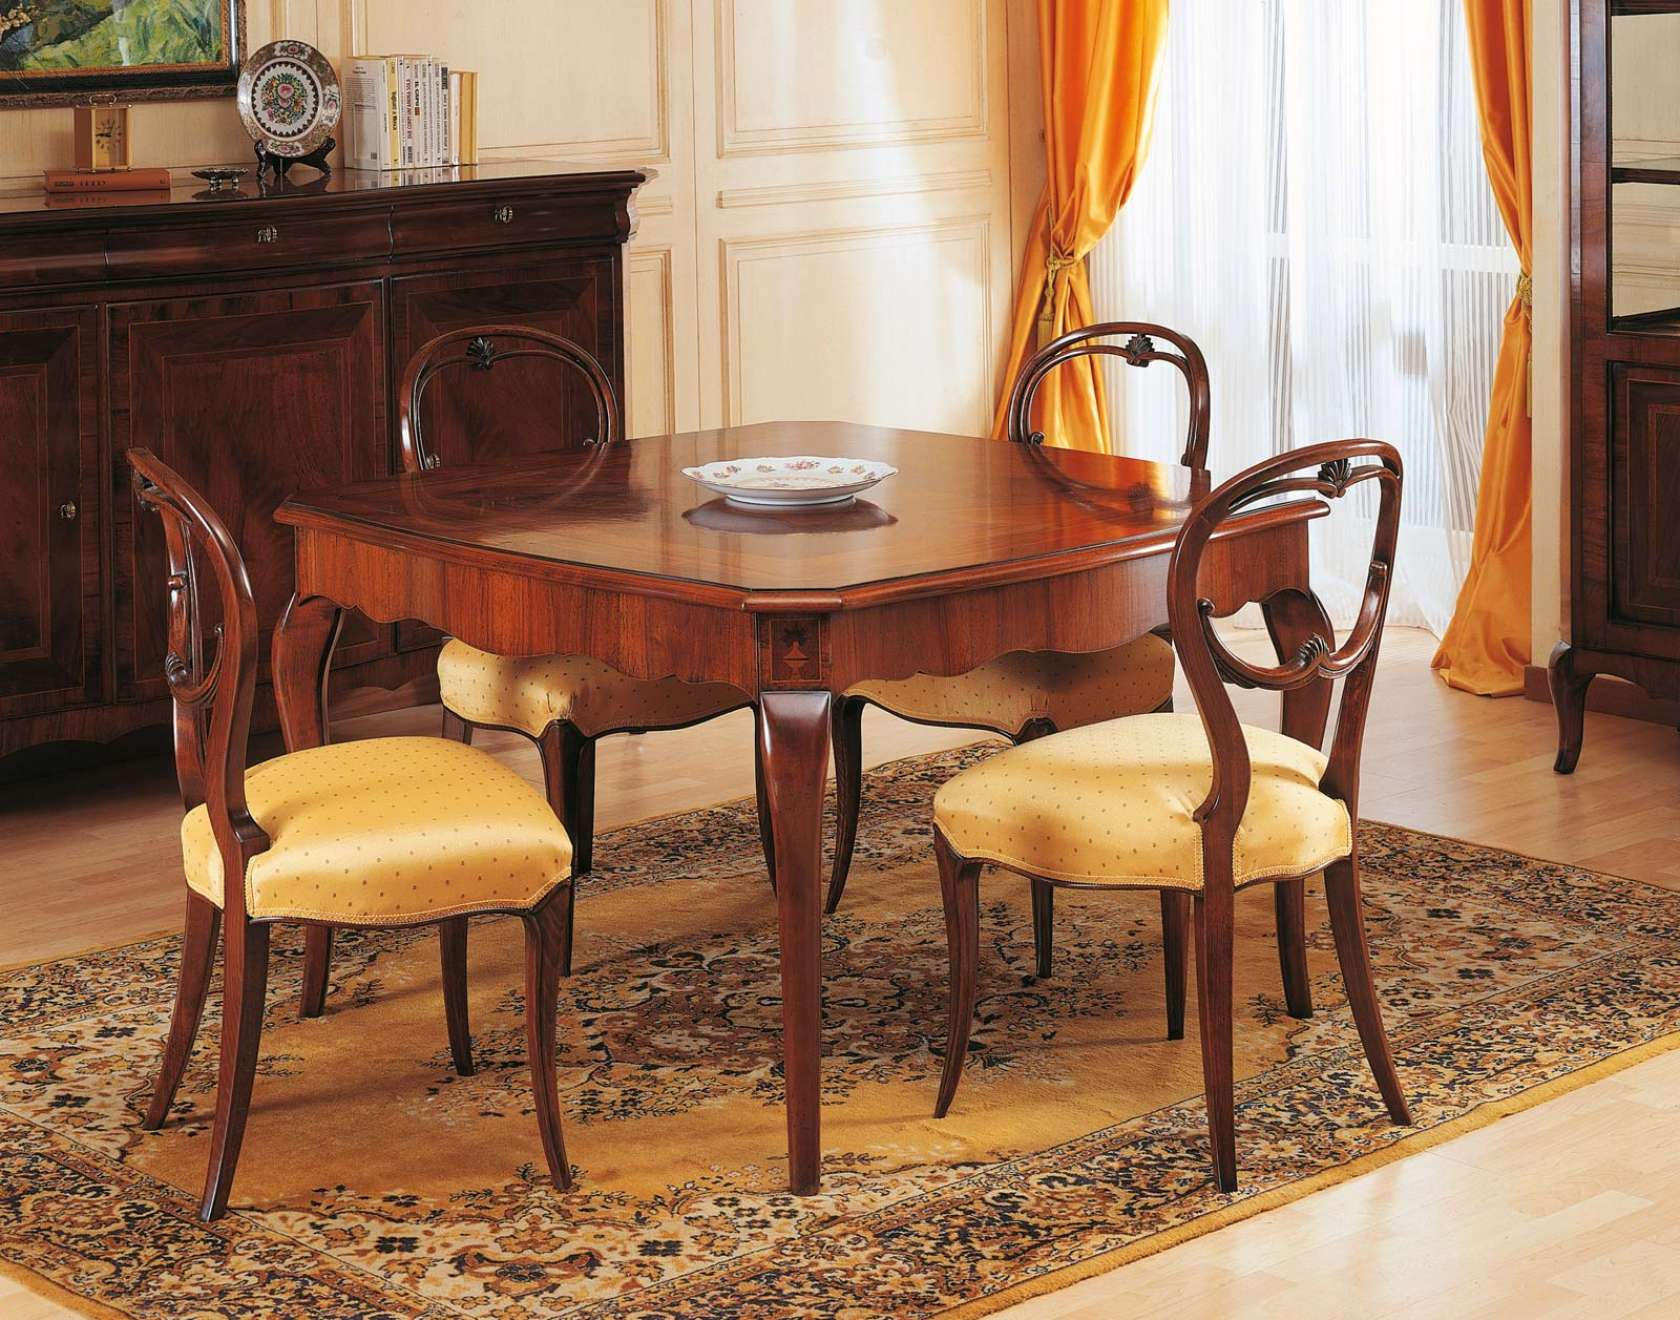 Walnut Table In 19th Century Style